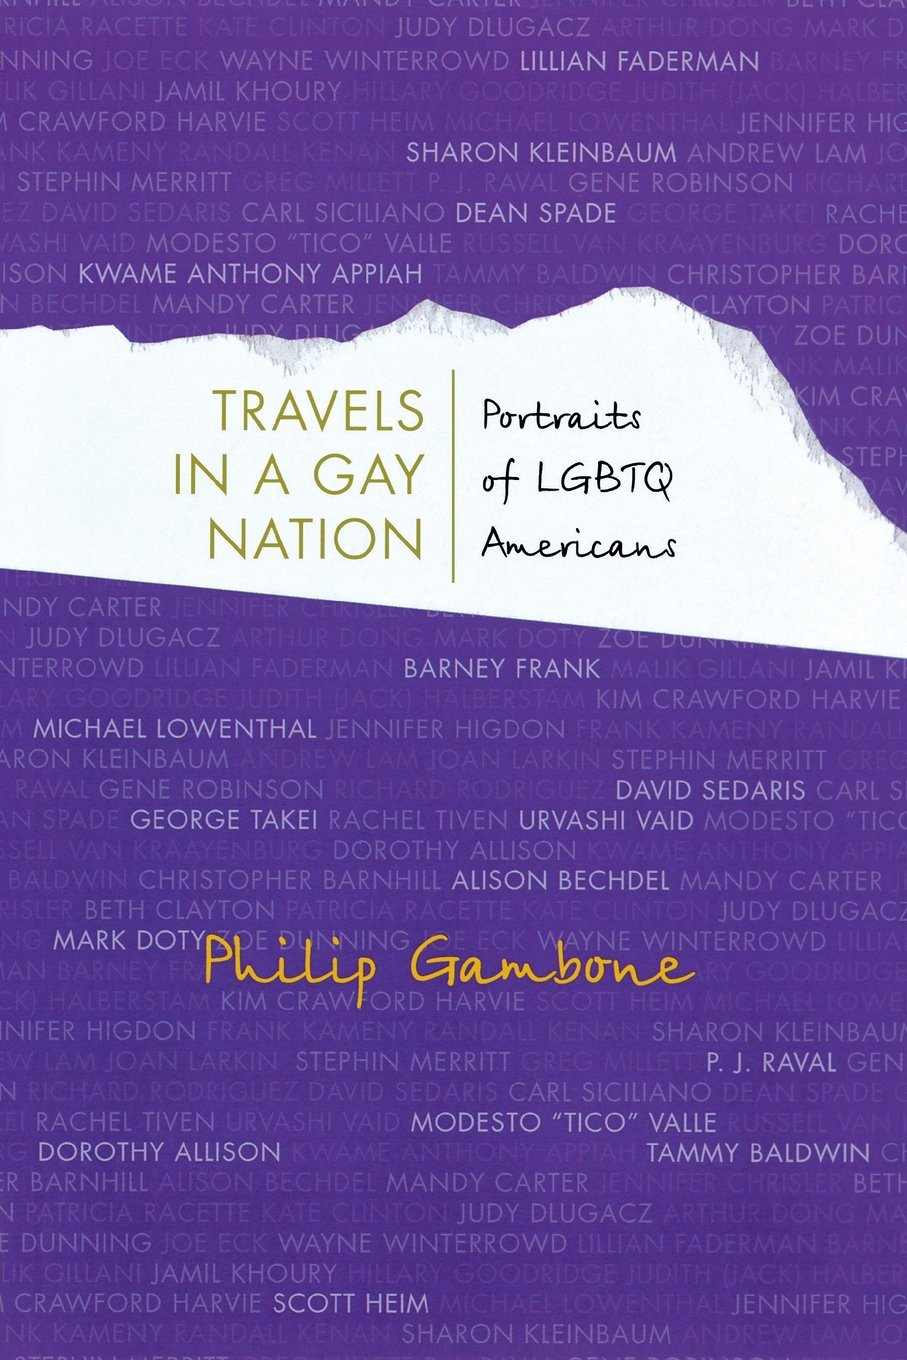 Amazon.com: Travels in a Gay Nation: Portraits of LGBTQ Americans ...